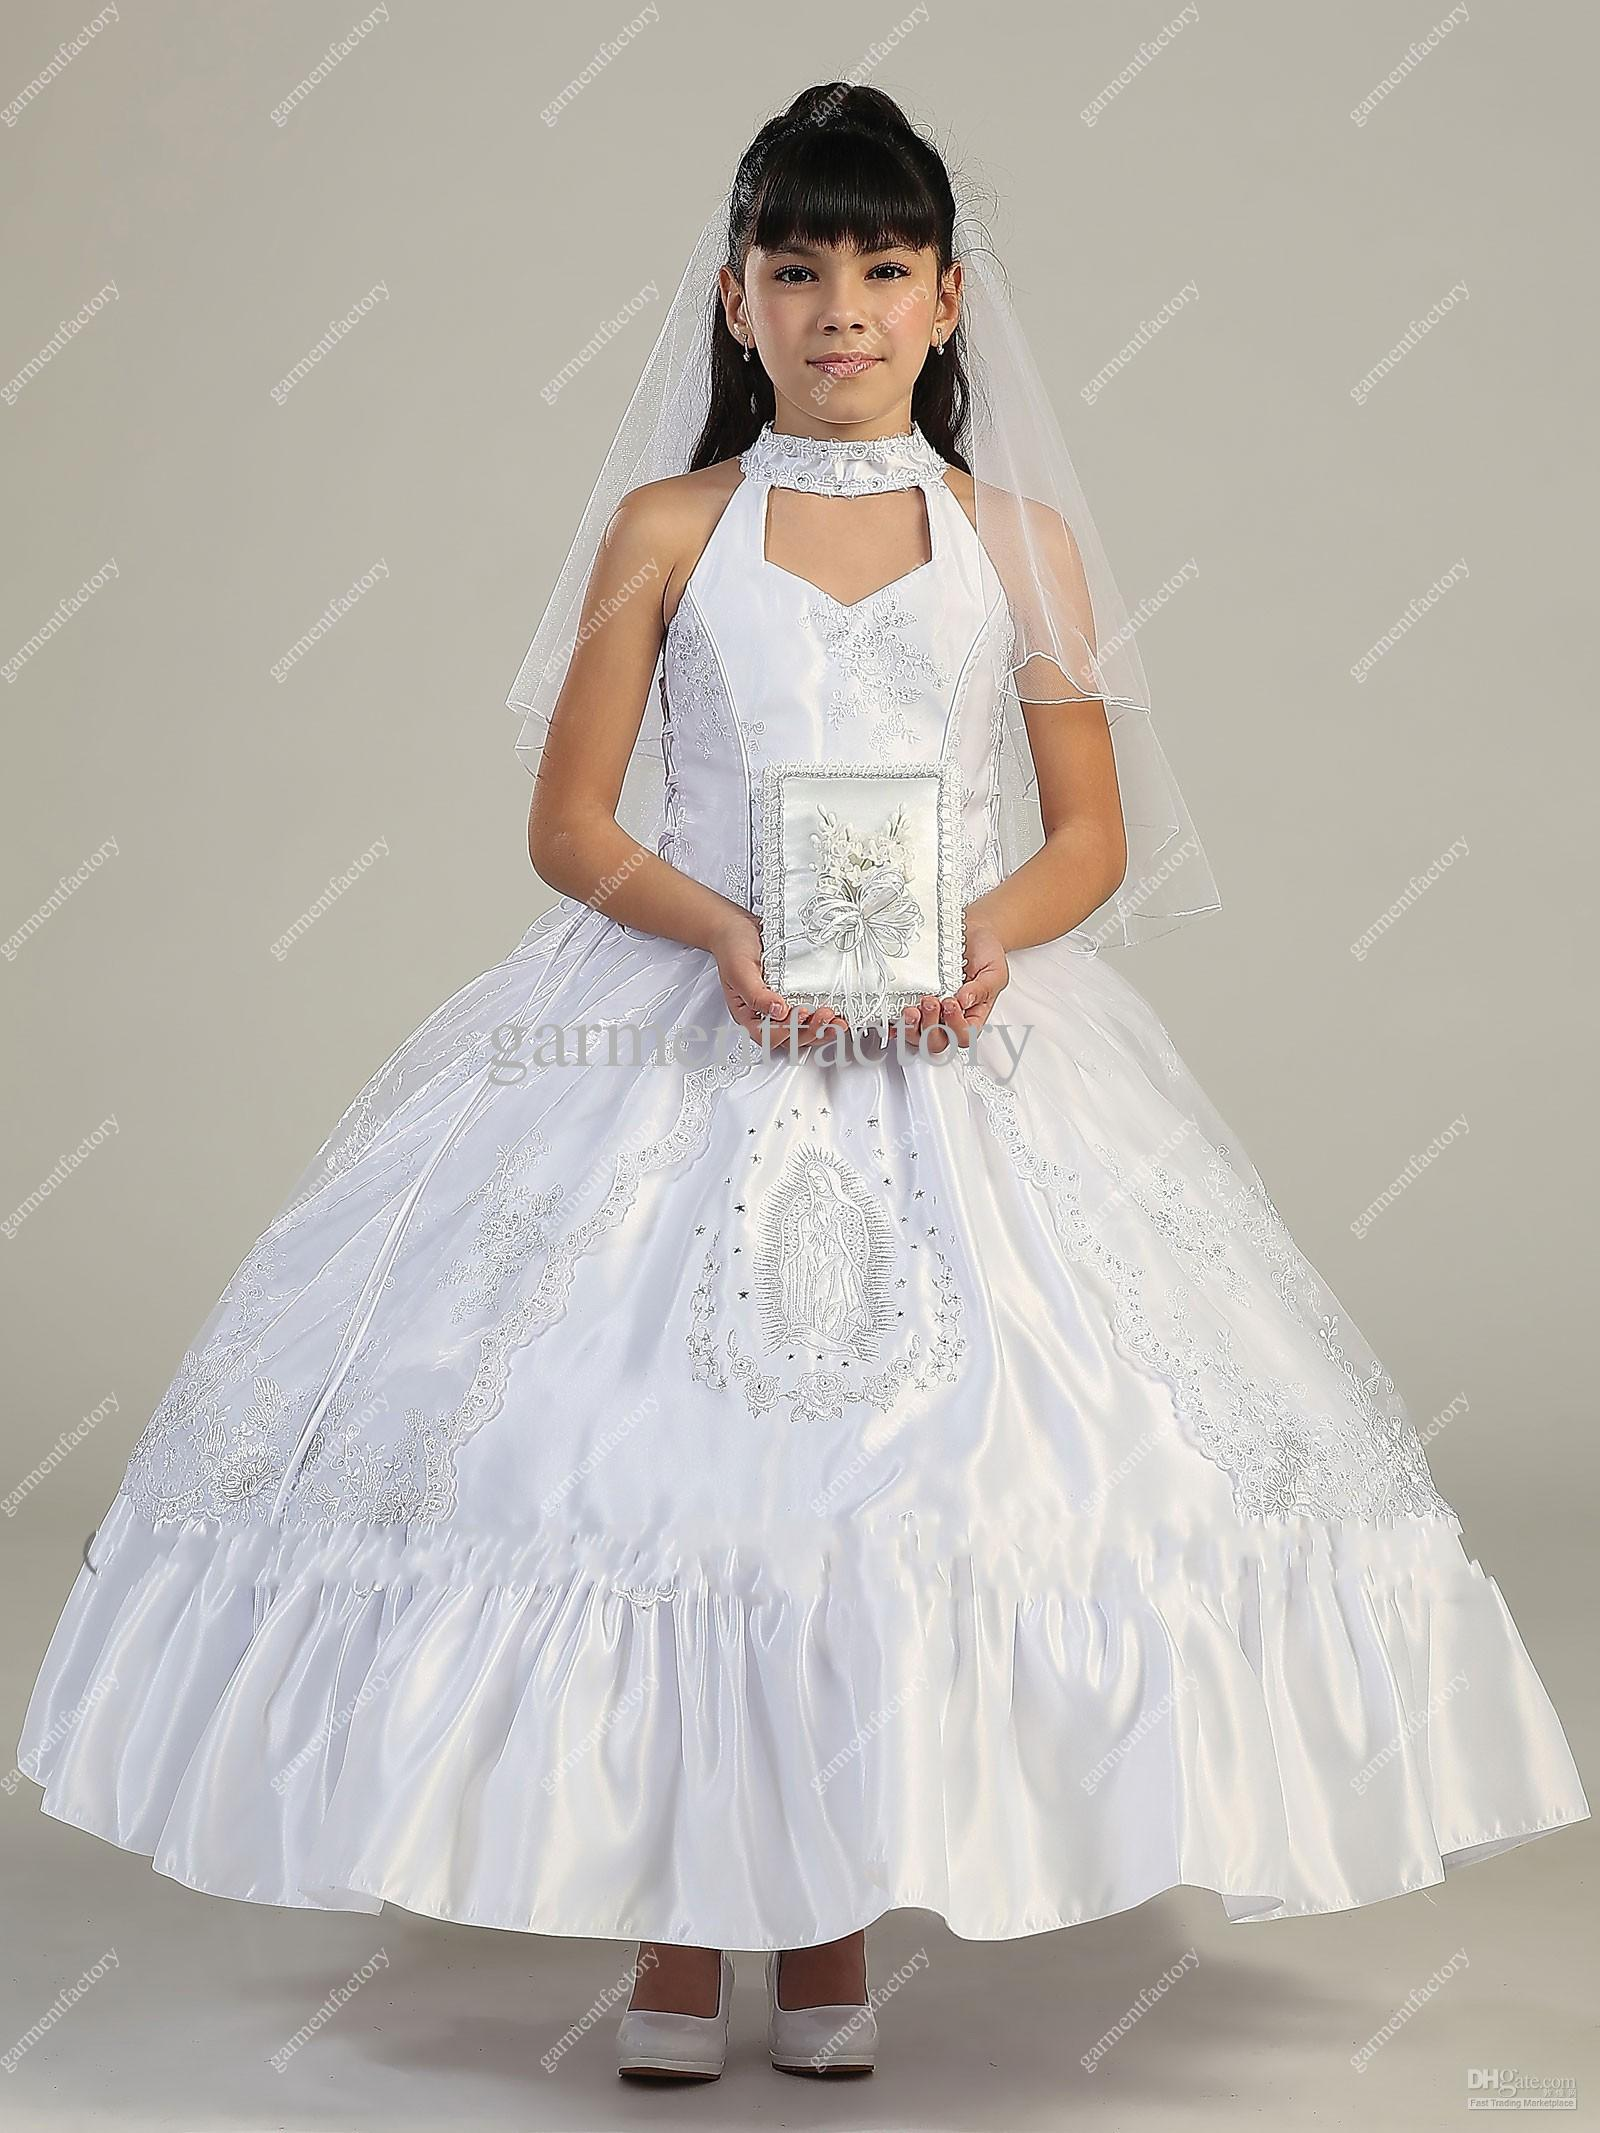 Bridesmaid dress hire norfolk small girl bridesmaid dresses ombrellifo Image collections